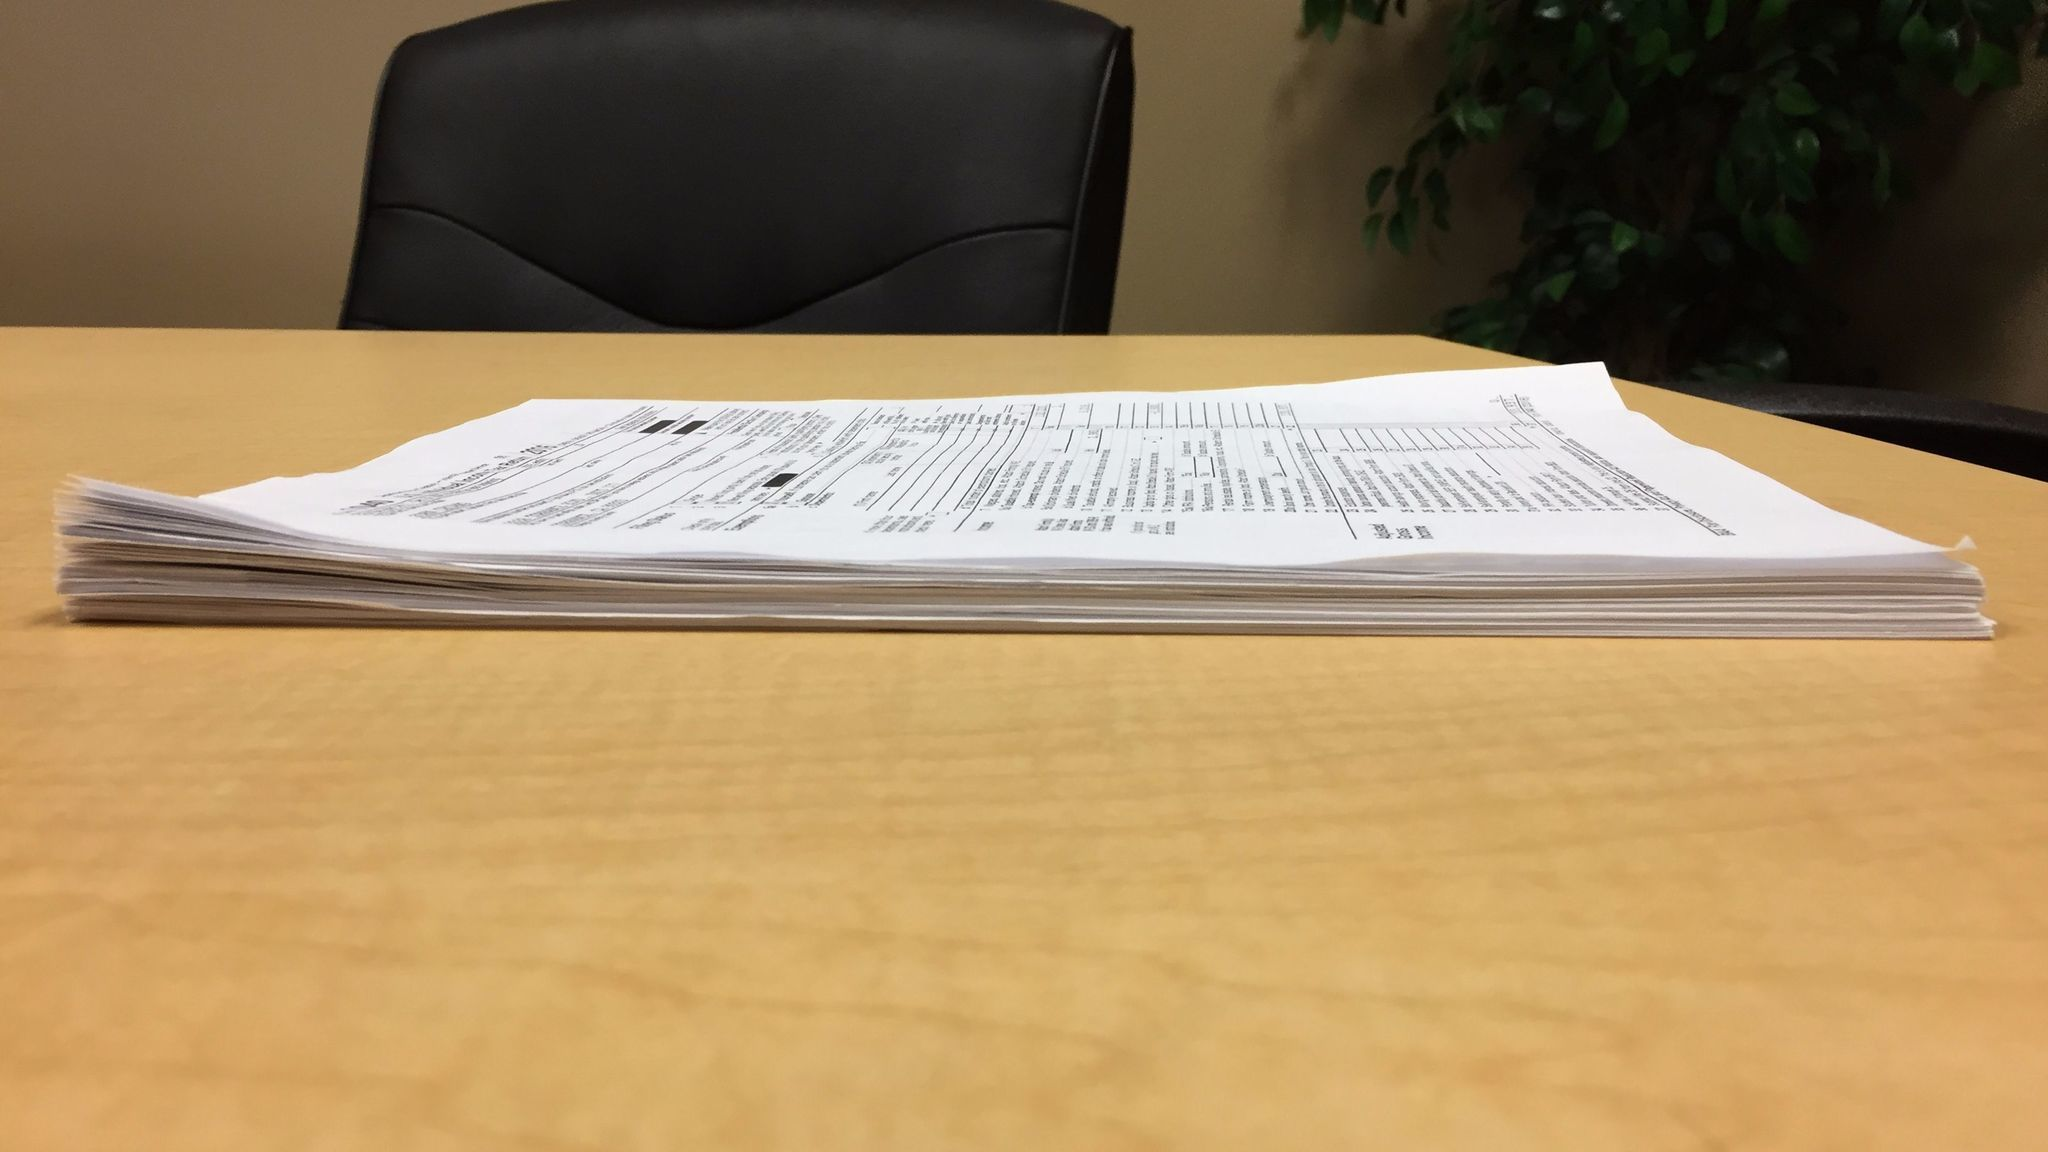 Six years of State Treasurer John Chiang's tax returns, from 2011 to 2016.